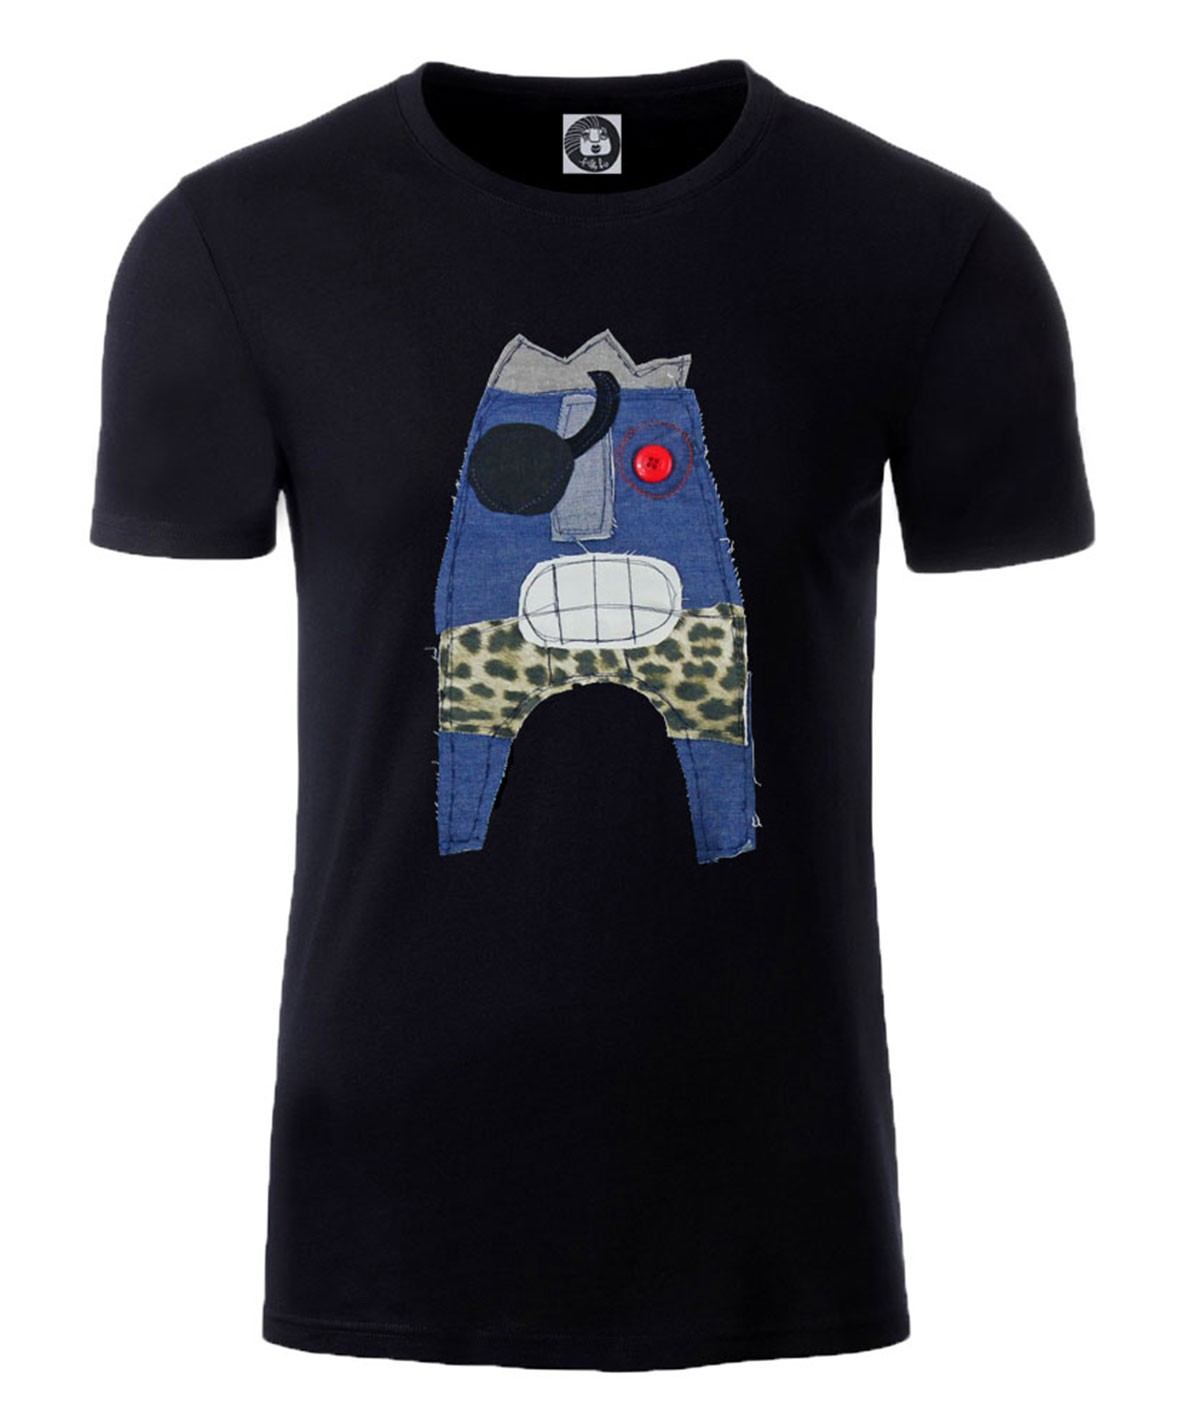 Denim monster T-shirt